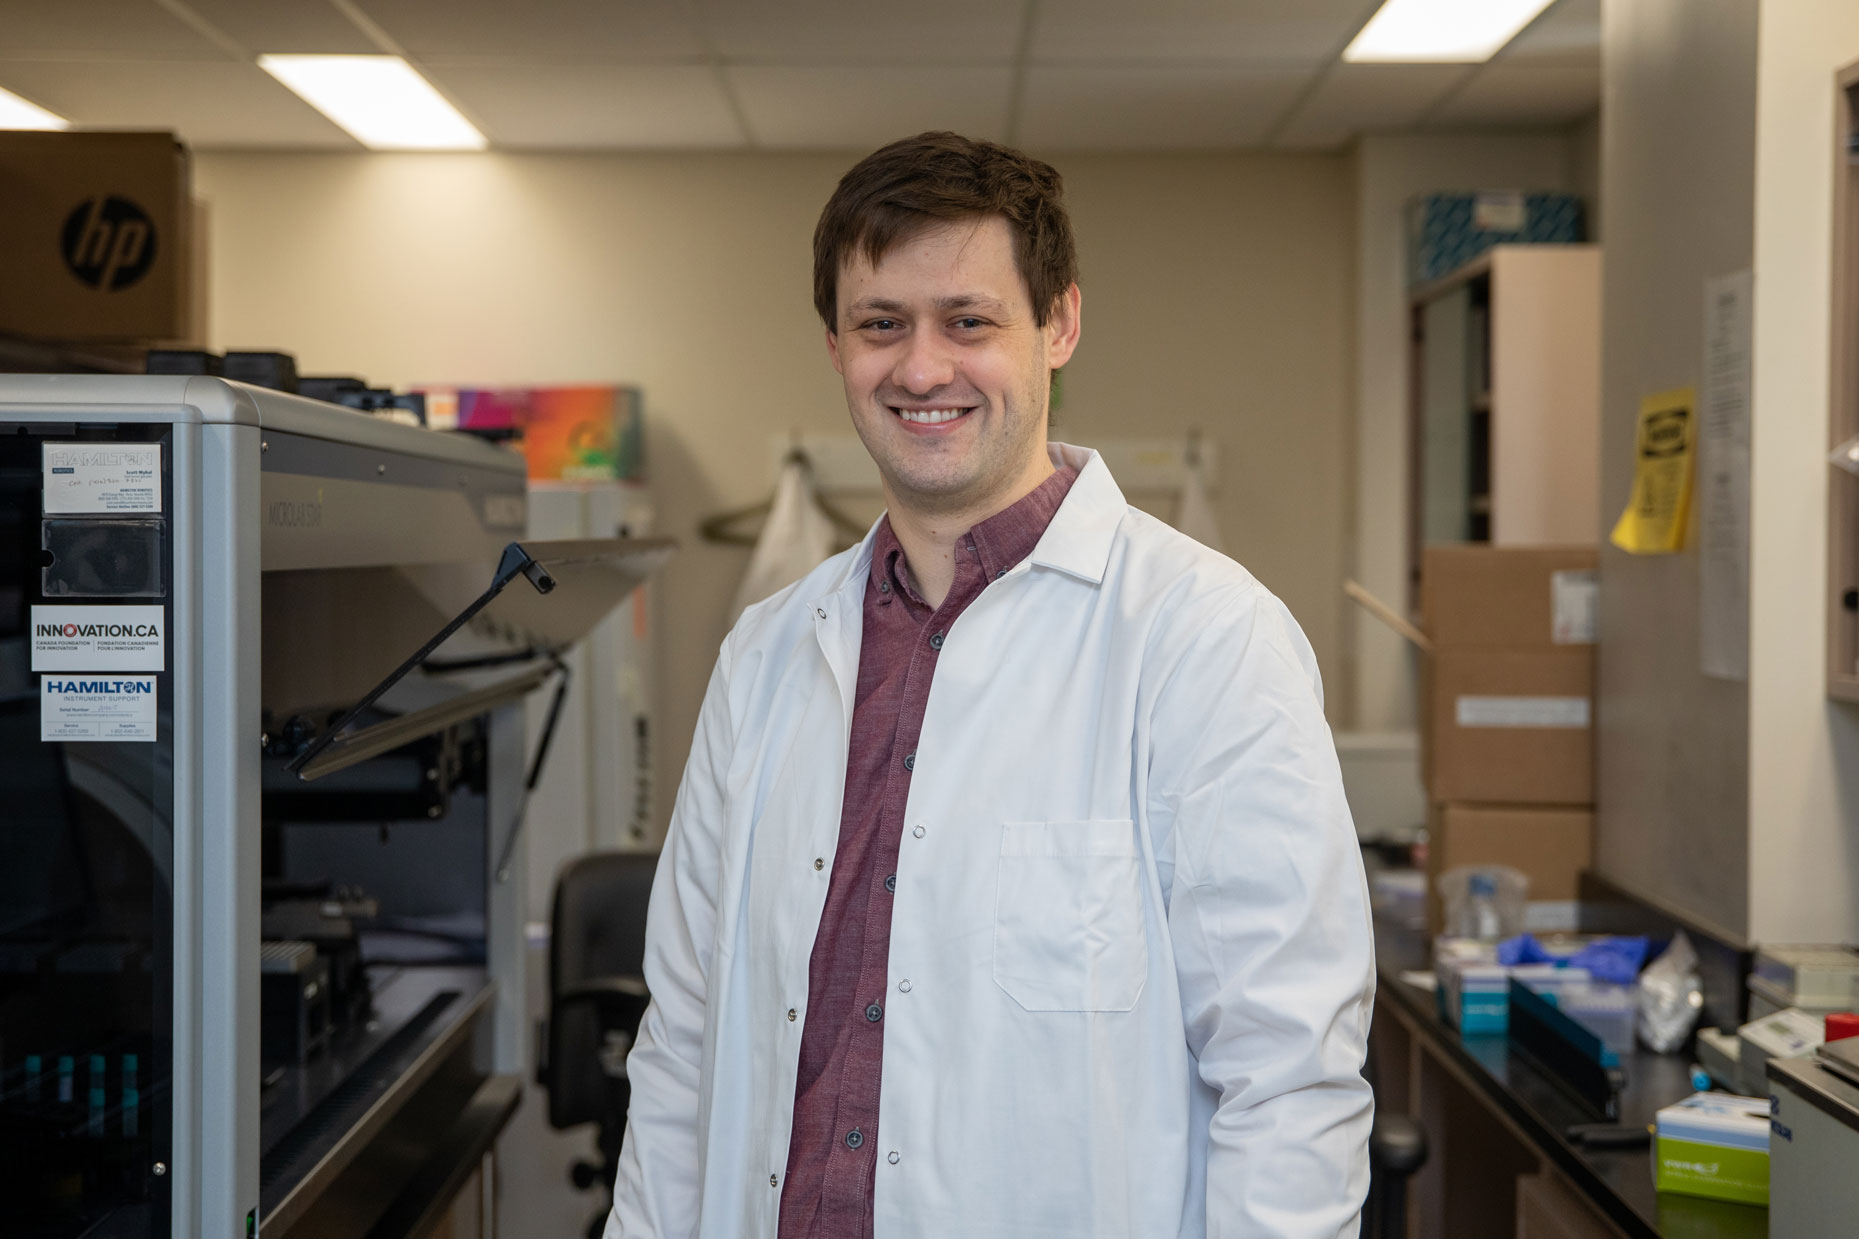 Hamilton Scientists Develop Novel Methods To Massively Increase Covid 19 Testing In Ontario News